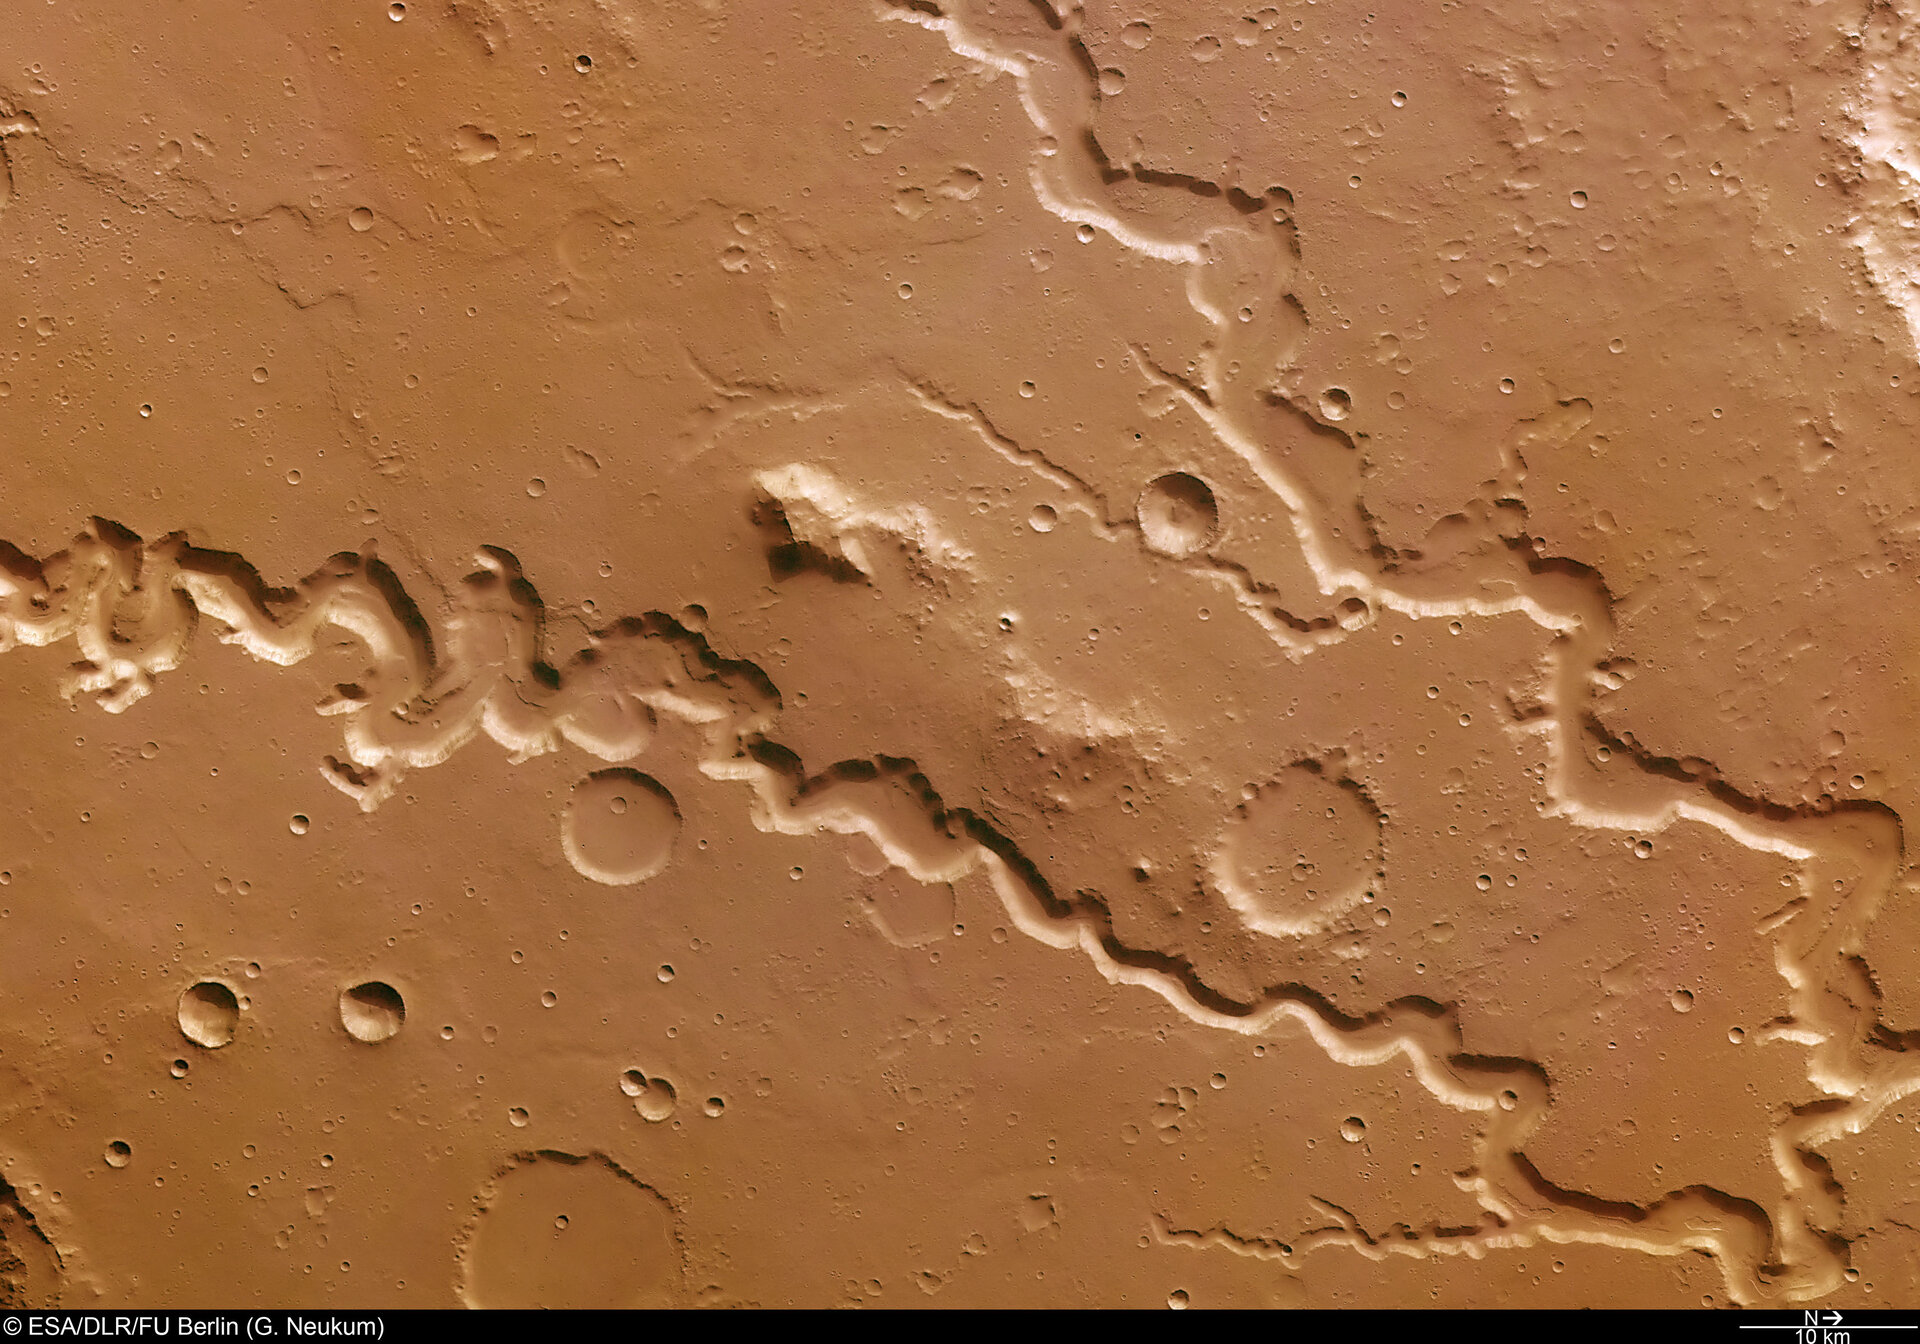 Nanedi Valles valley system on Mars